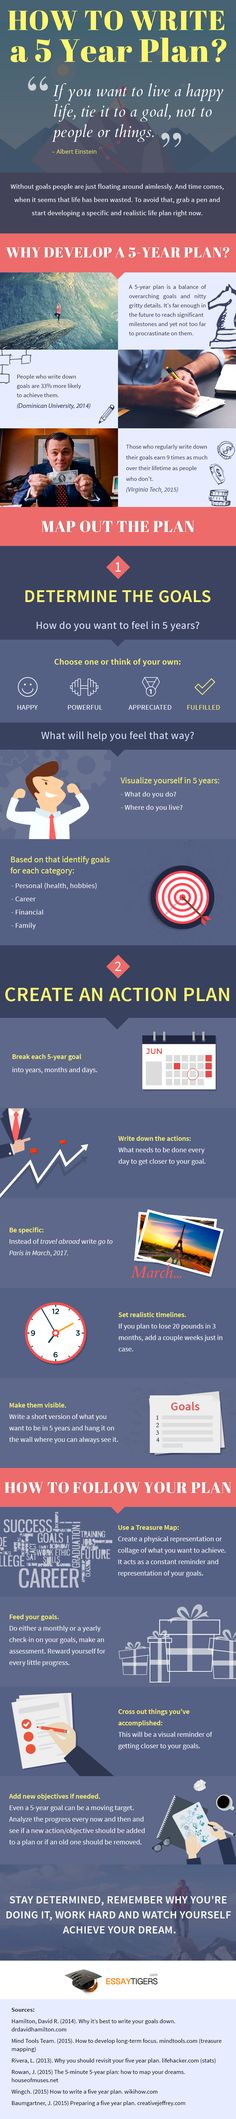 Business and management infographic & data visualisation How to Write a 5 Year Plan Infographic Description A life without goals is useless. Goal Planning, Business Planning, Self Development, Personal Development, Life Skills, Life Lessons, 5 Year Plan, Kaizen, Life Plan